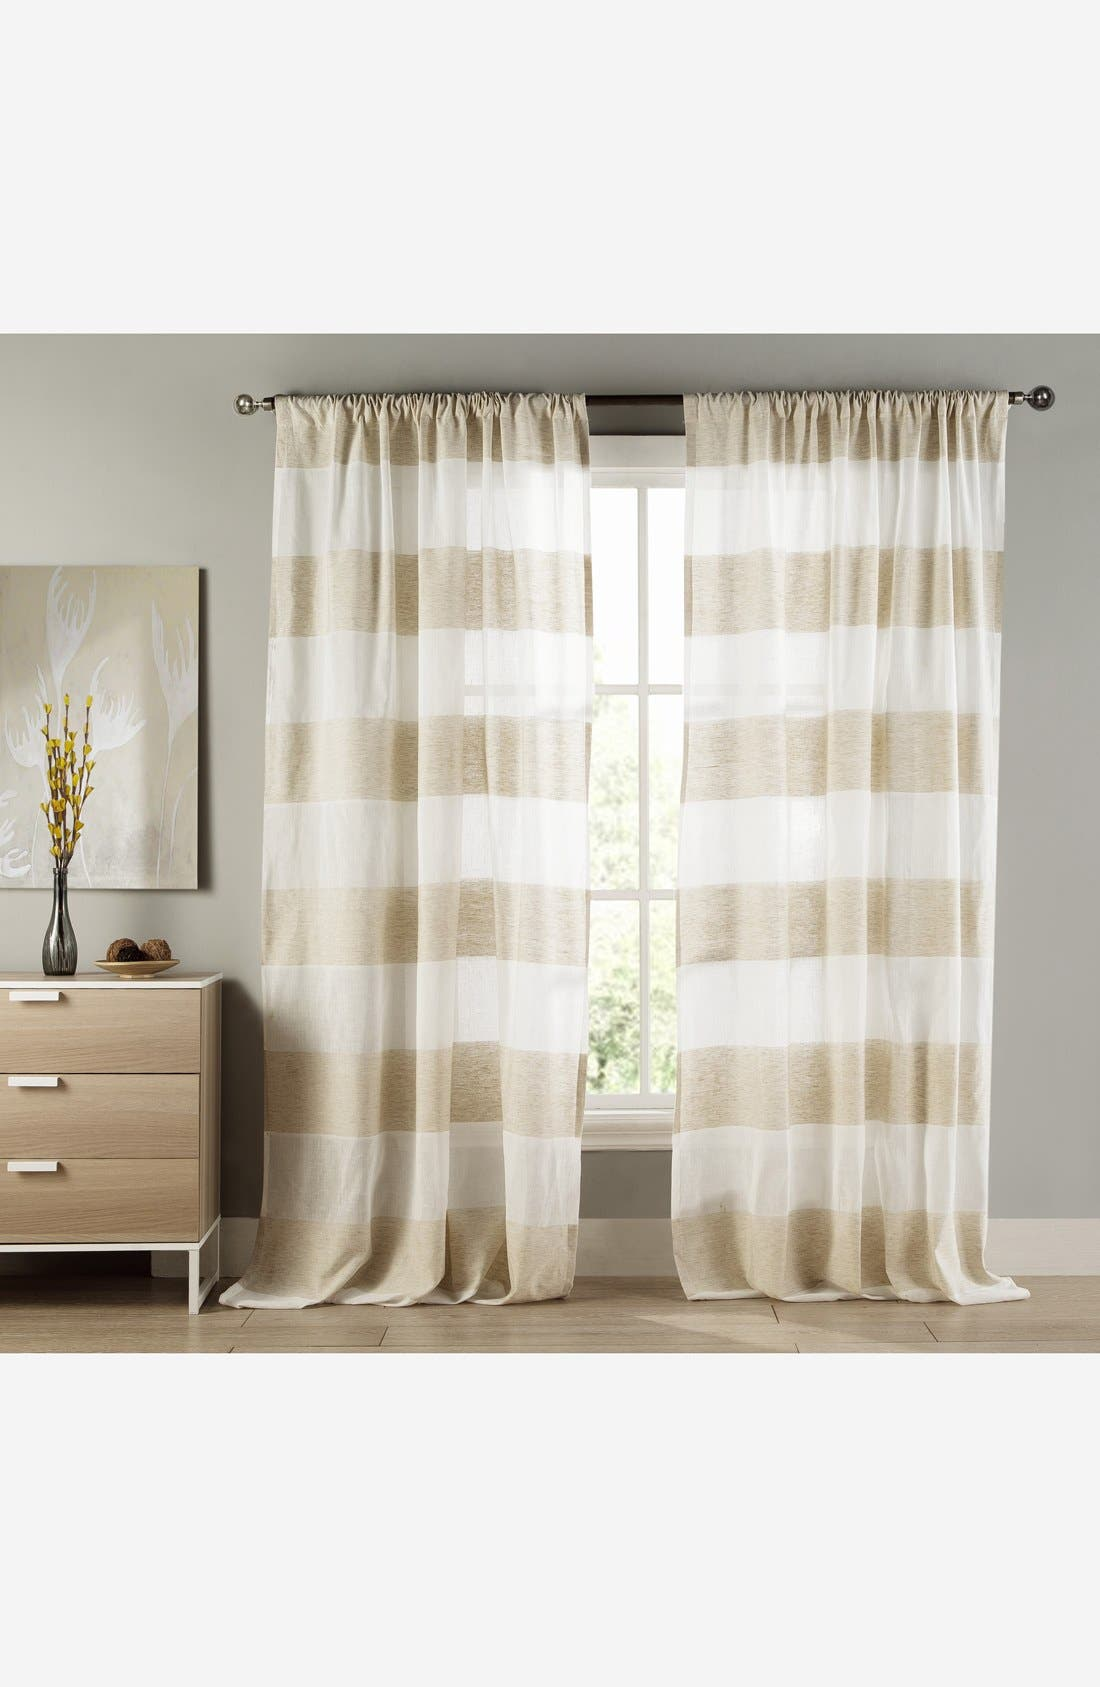 Alternate Image 1 Selected - Duck River Textile 'Lydelle' Cabana Stripe Window Panels (Set of 2)